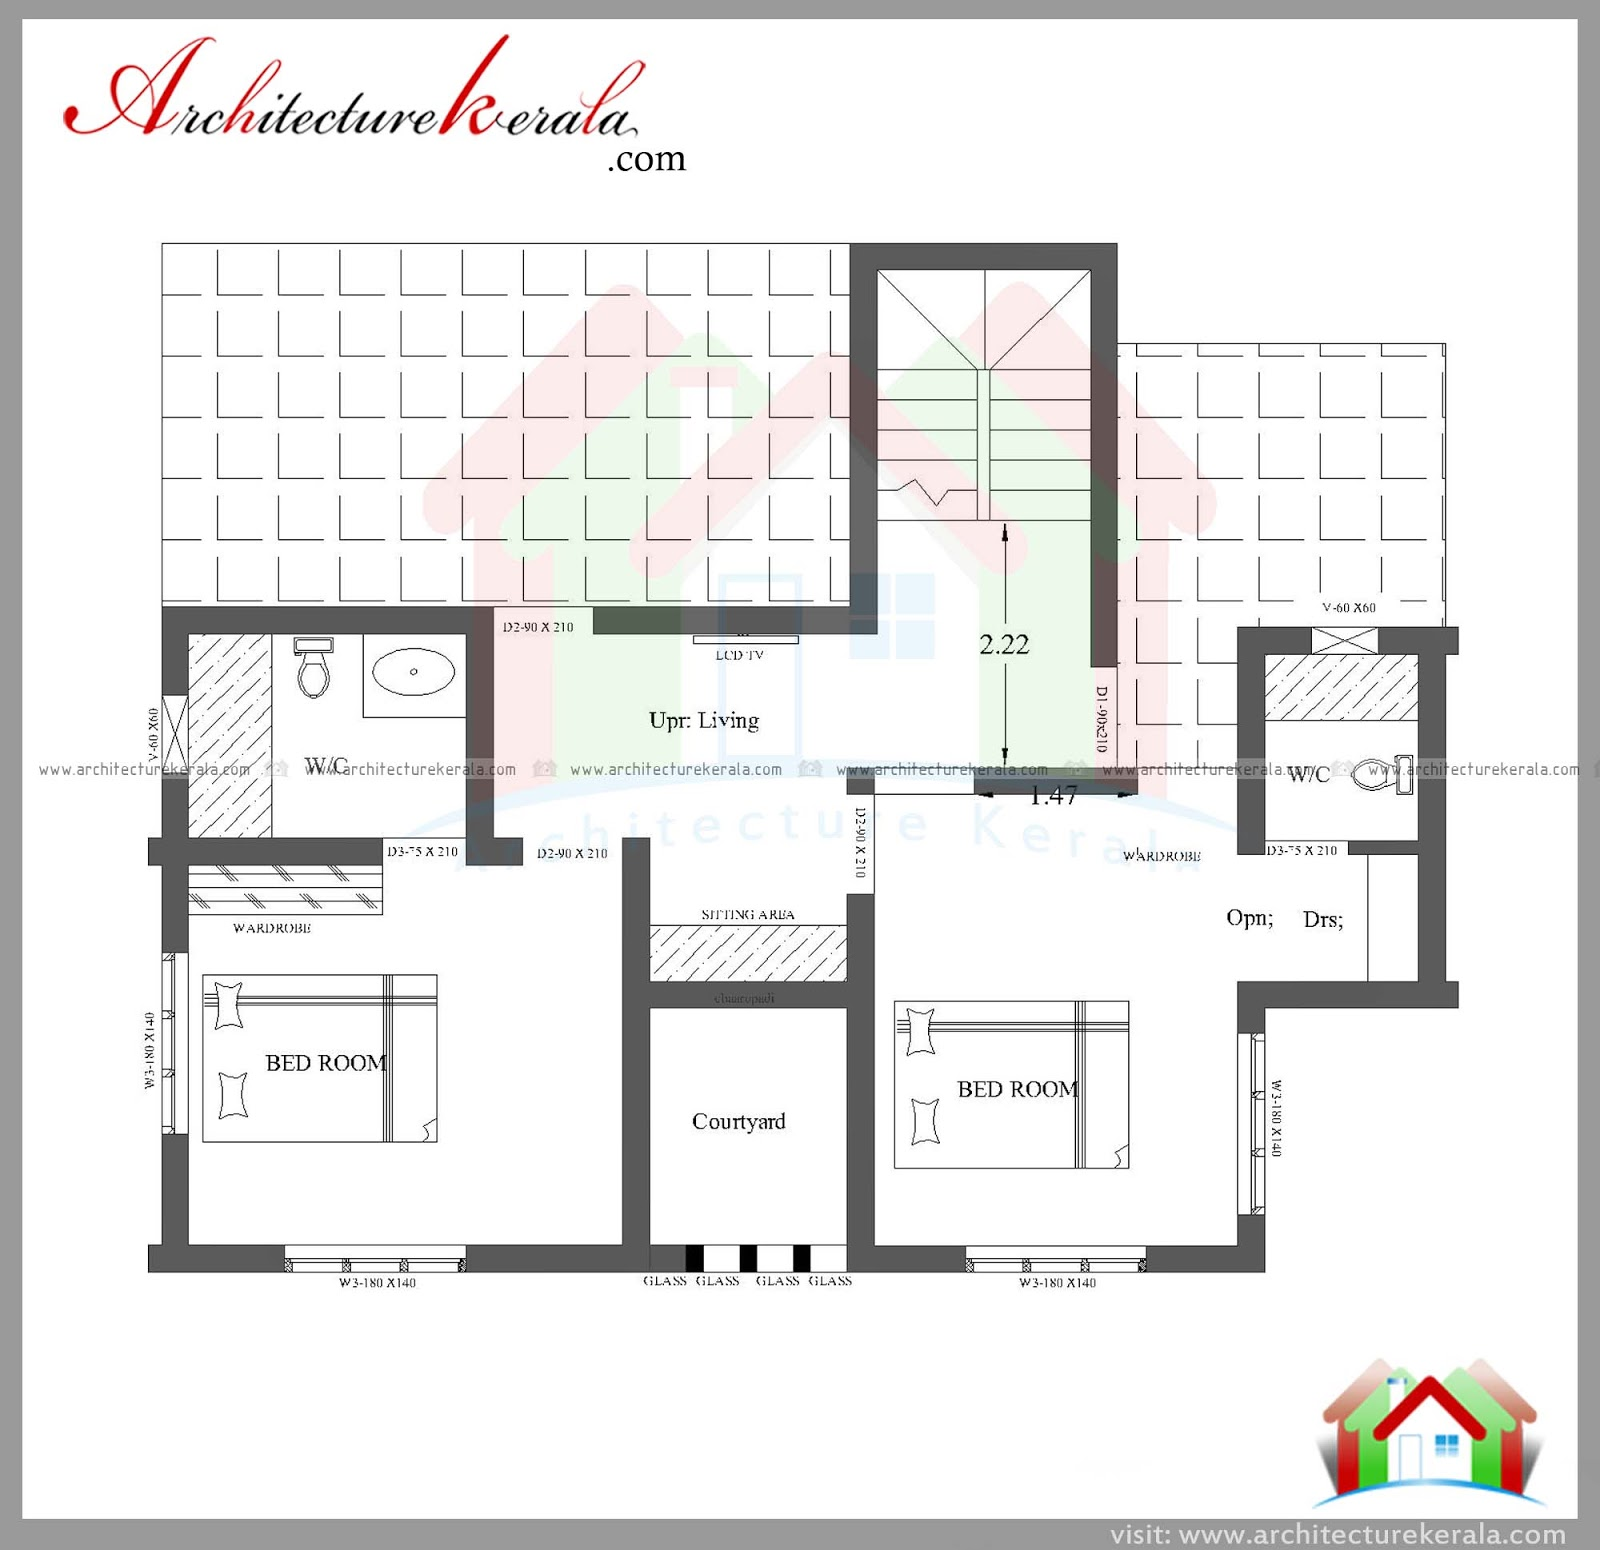 3 bedroom house plan and elevation consultation room large dining and drawing rooms and kitchen with work area total area 1909 square feet